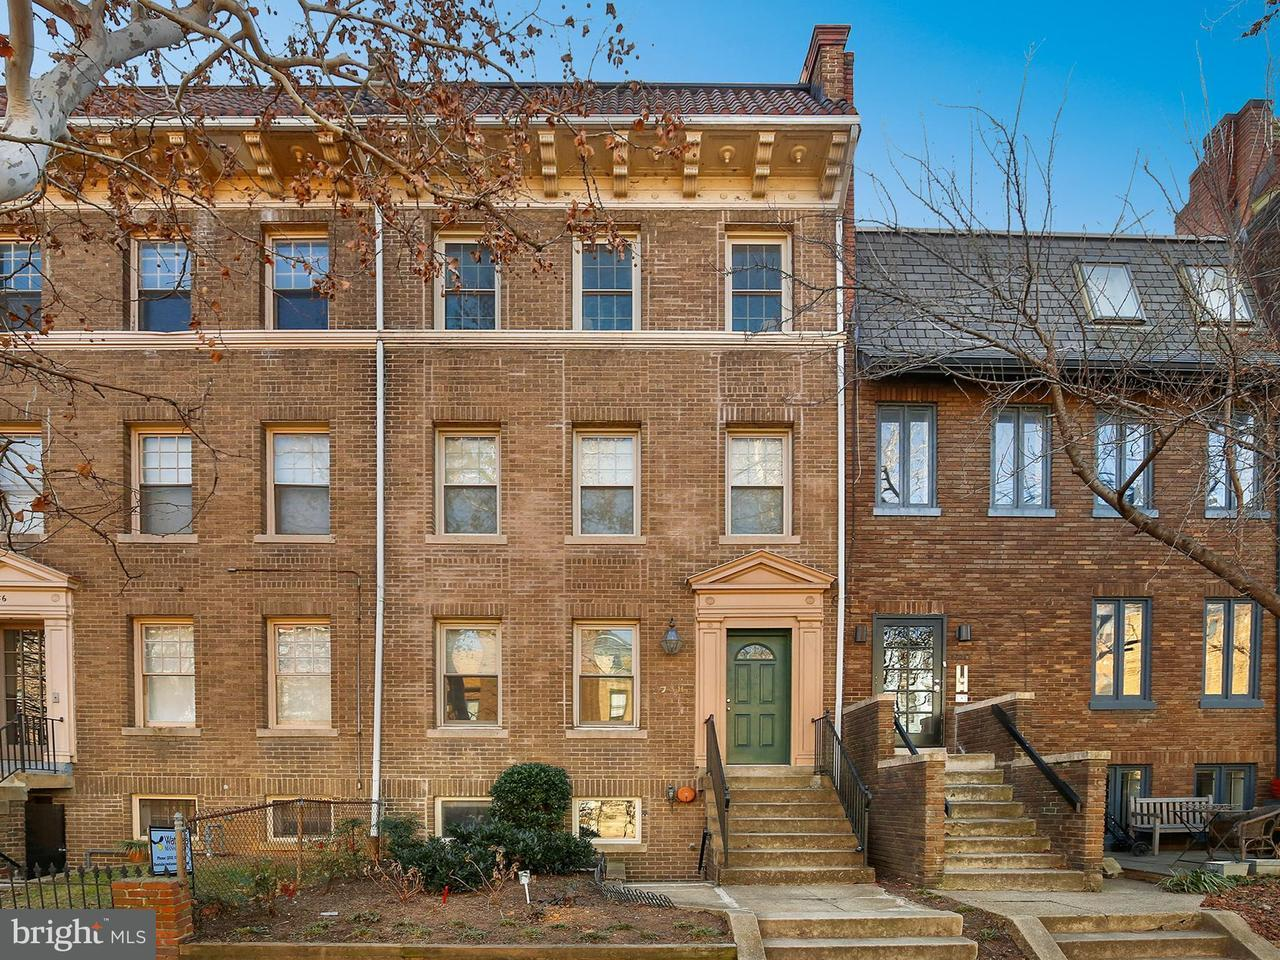 real estate in washington dc area essay List of washington, dc area universities george washington university in washington dc video review master of professional studies in real estate.